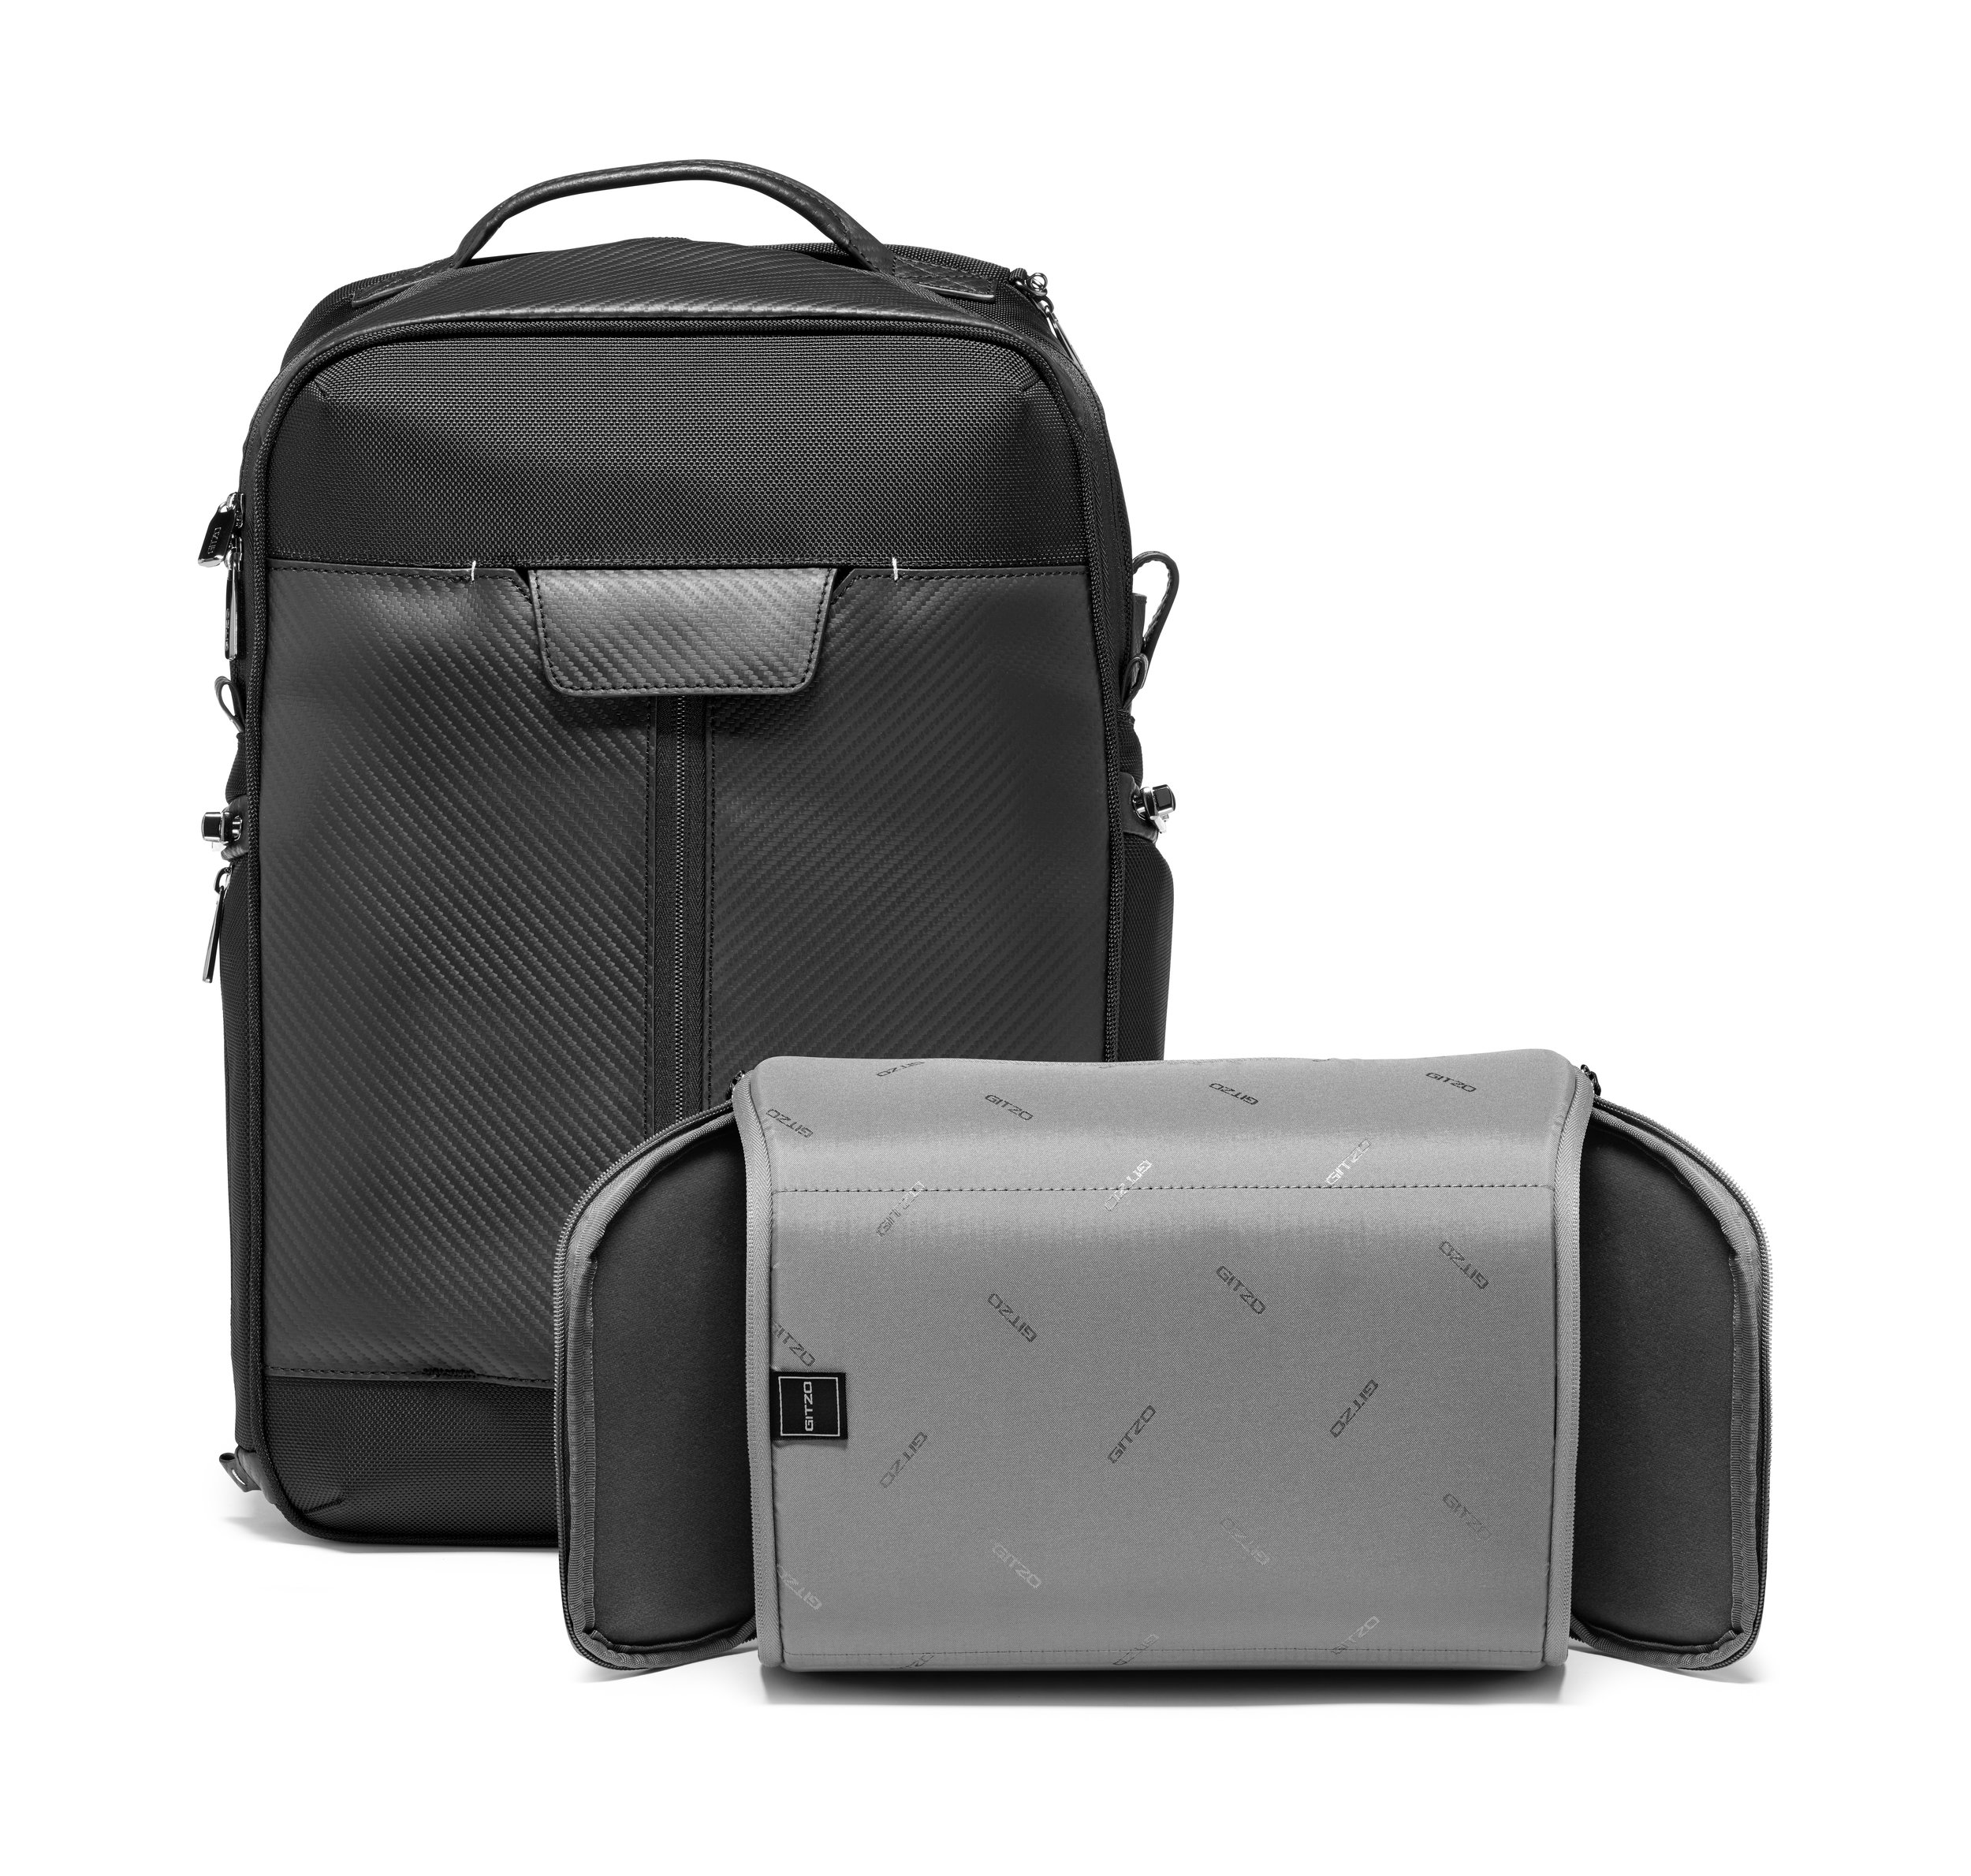 HR-GITZO_camera_bag_GCB100BP_insert.jpg